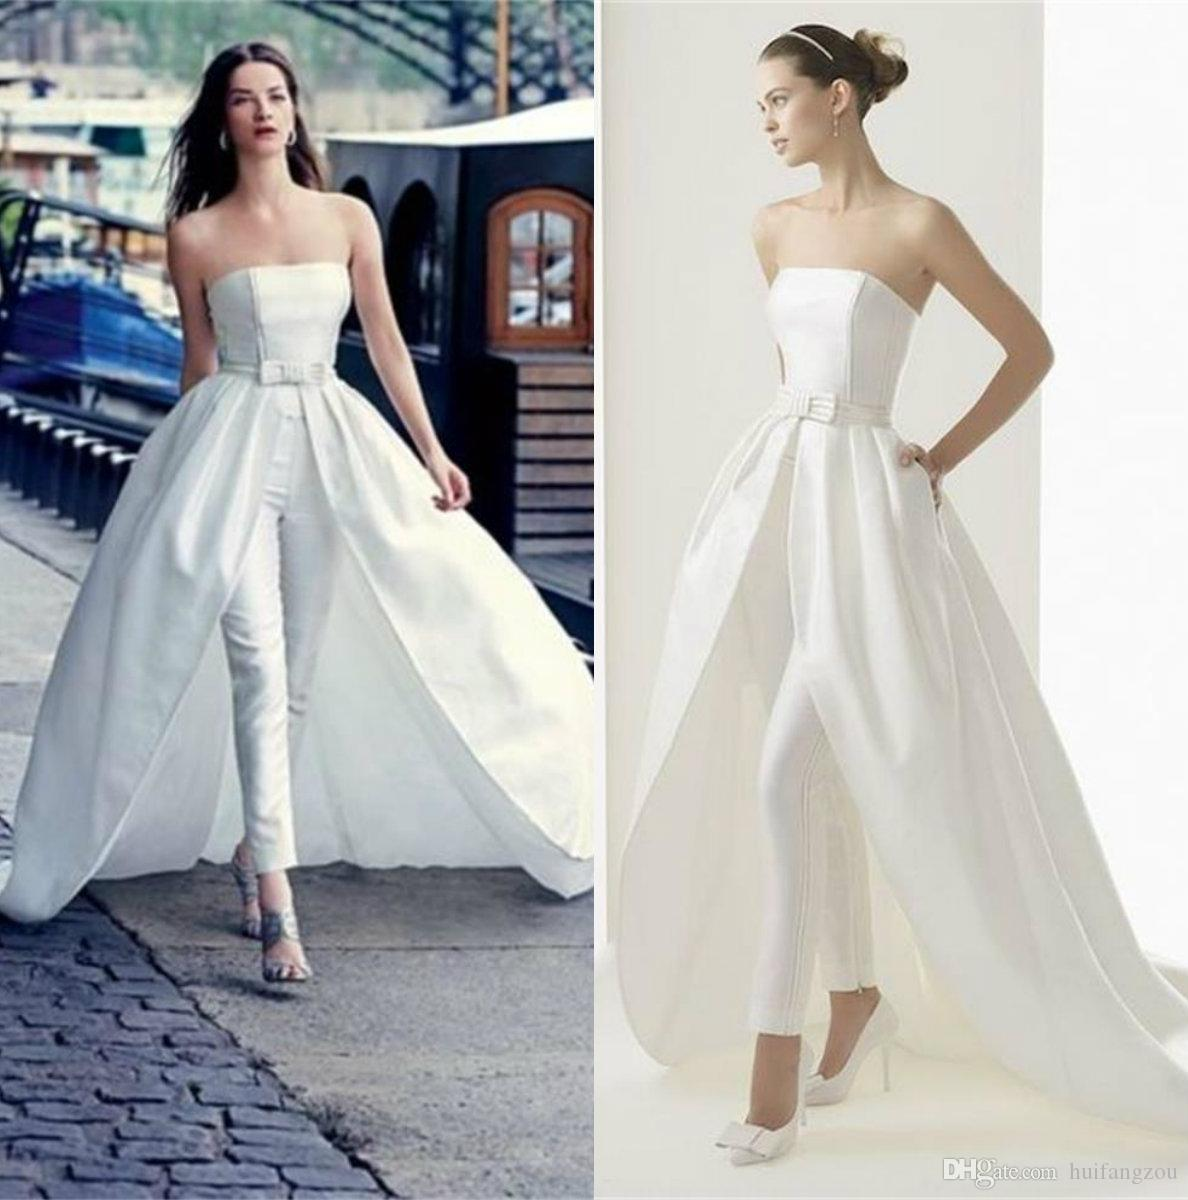 Jumpsuits To Wear To A Wedding: Gorgeous A Line Wedding Dresses Women Jumpsuits Bateau